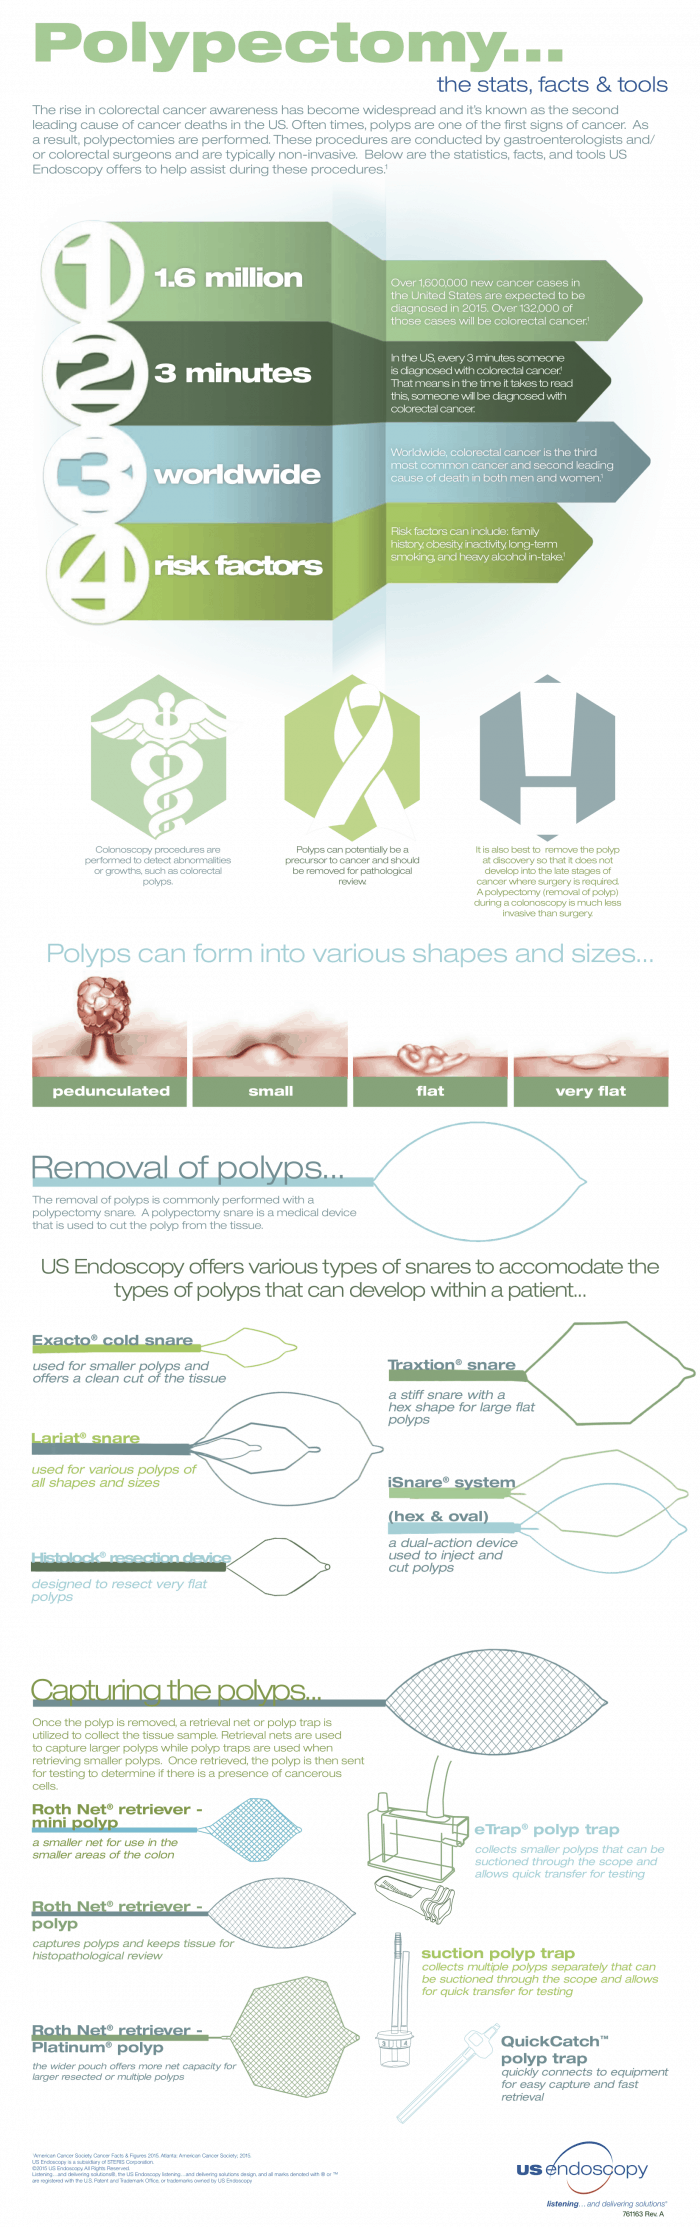 Polypectomy the stats, facts and tools infographic